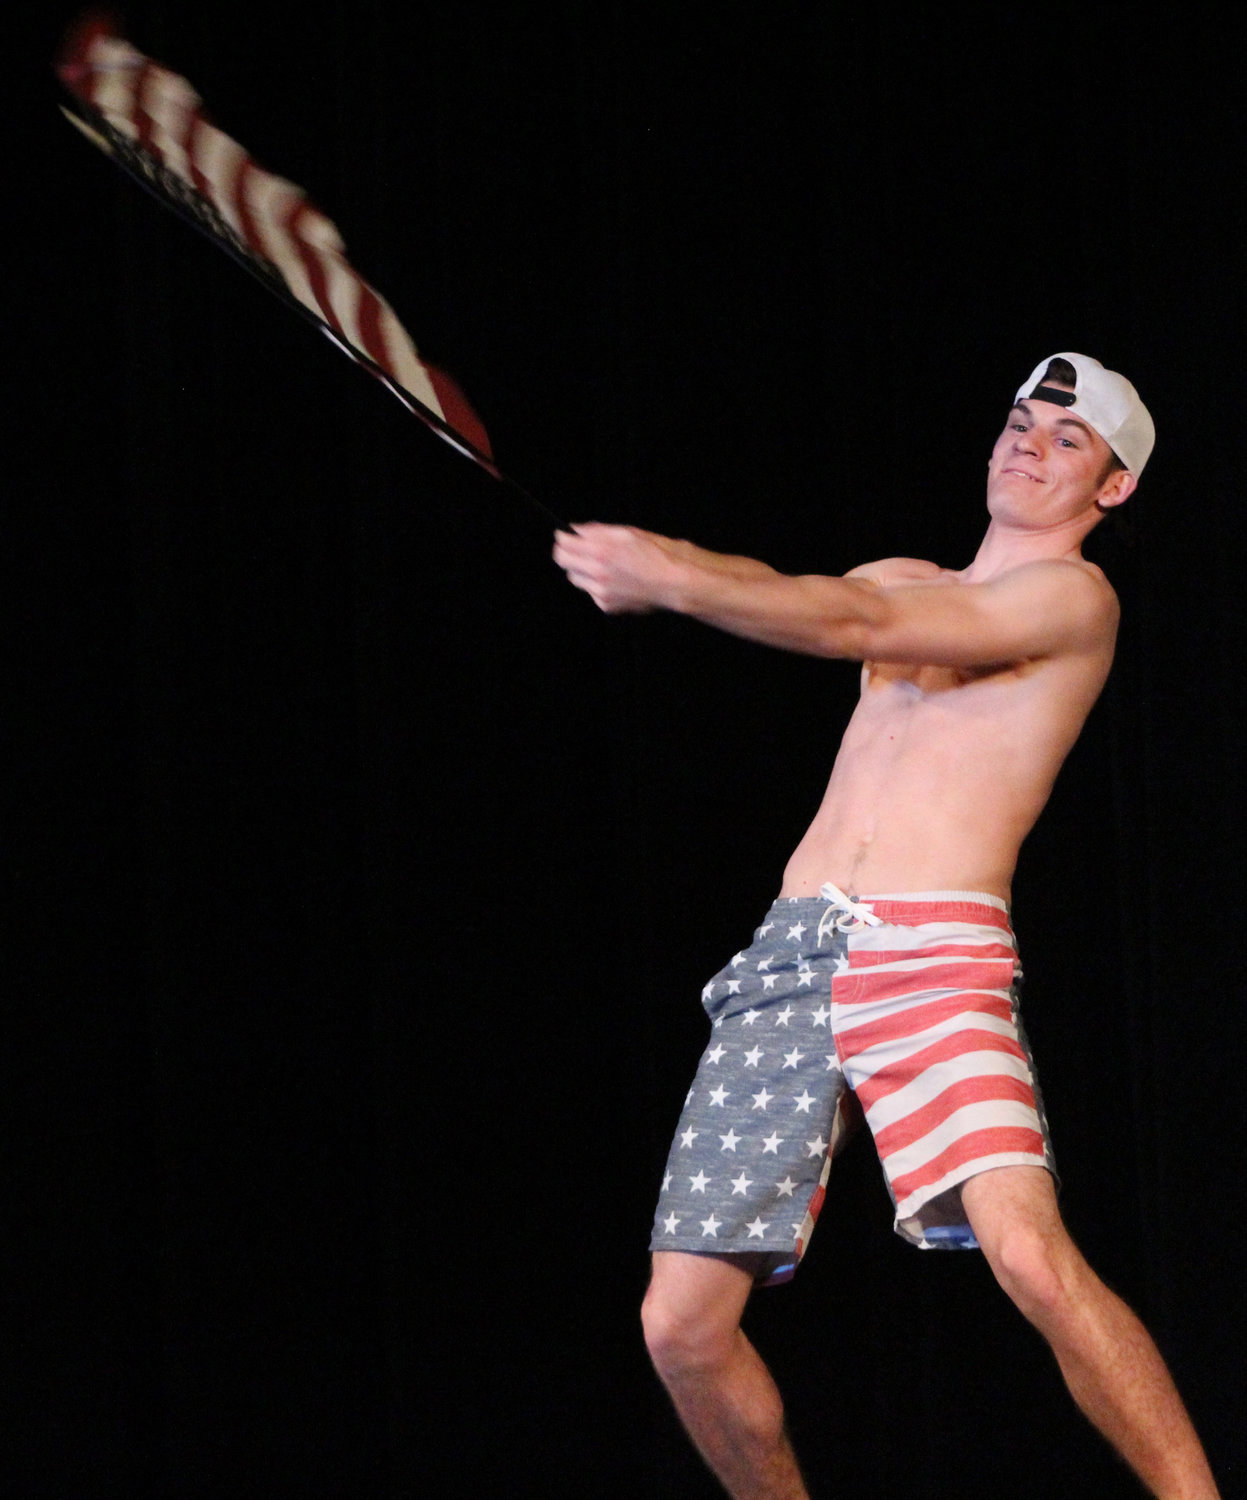 Scott Ash waves an American flag during Mr. Middletown on March 29.